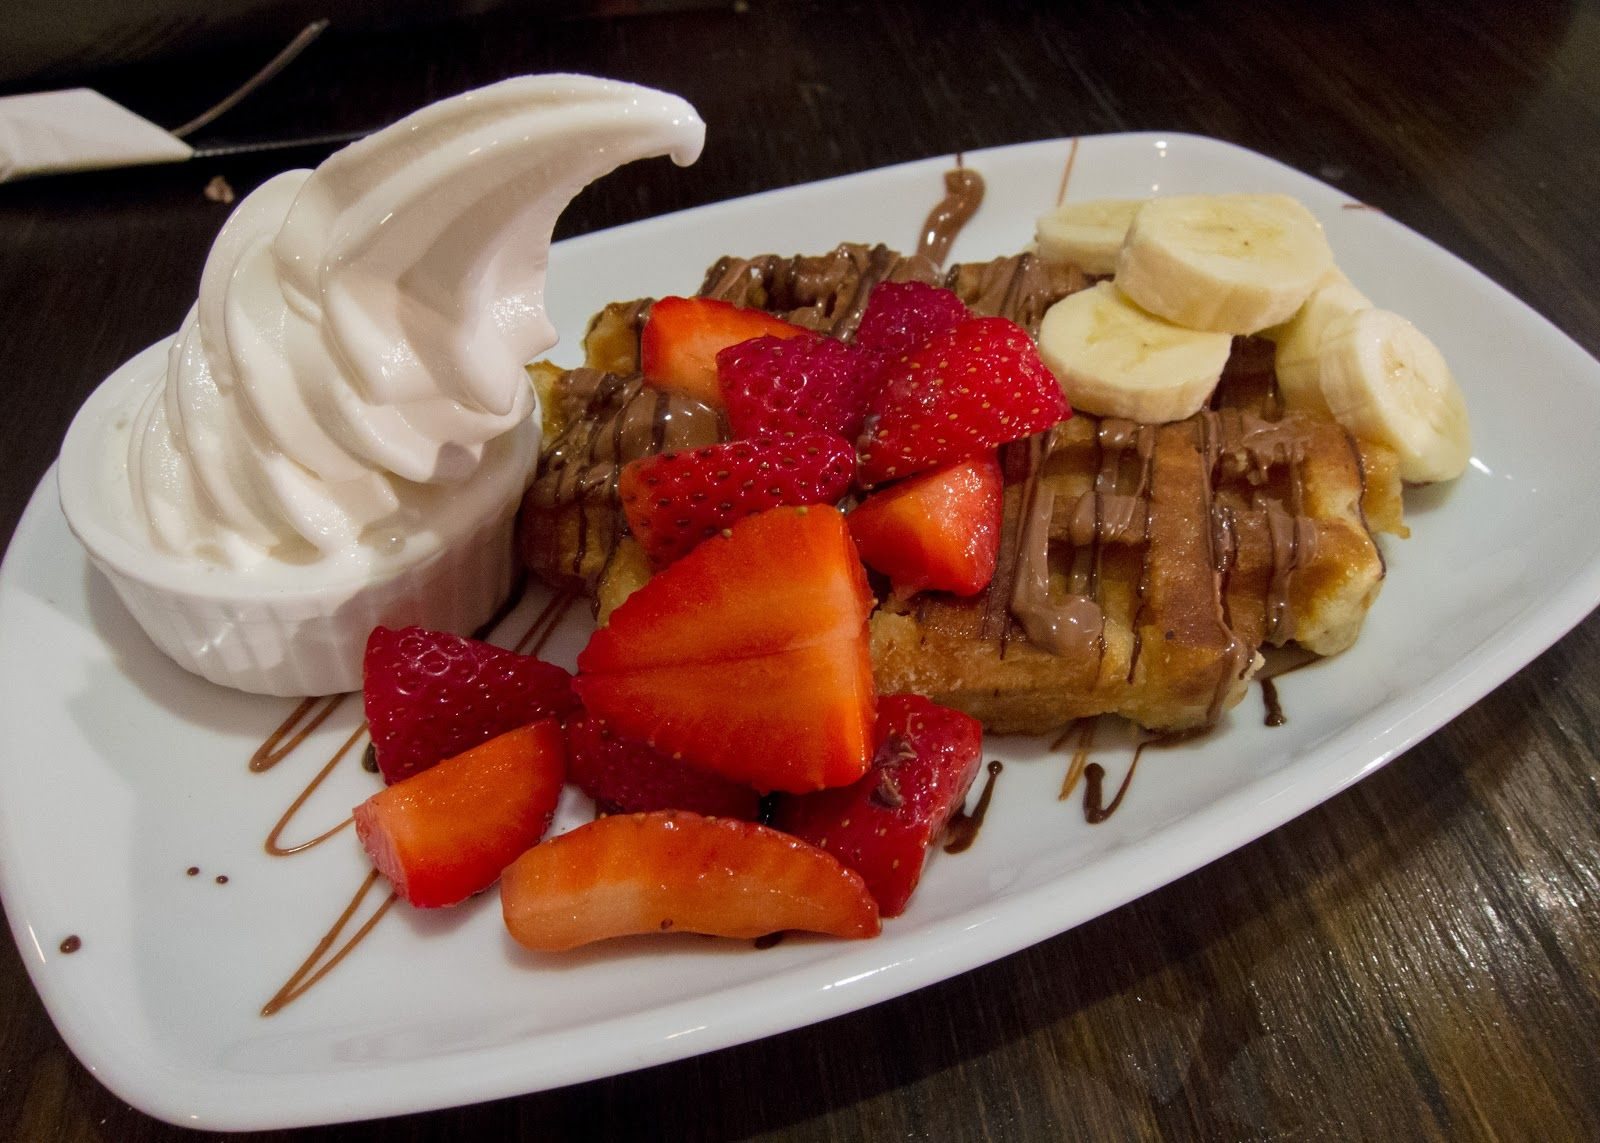 Wicked Waffles - Mooberry Dessert & Breakfast Bar, Neutral Bay